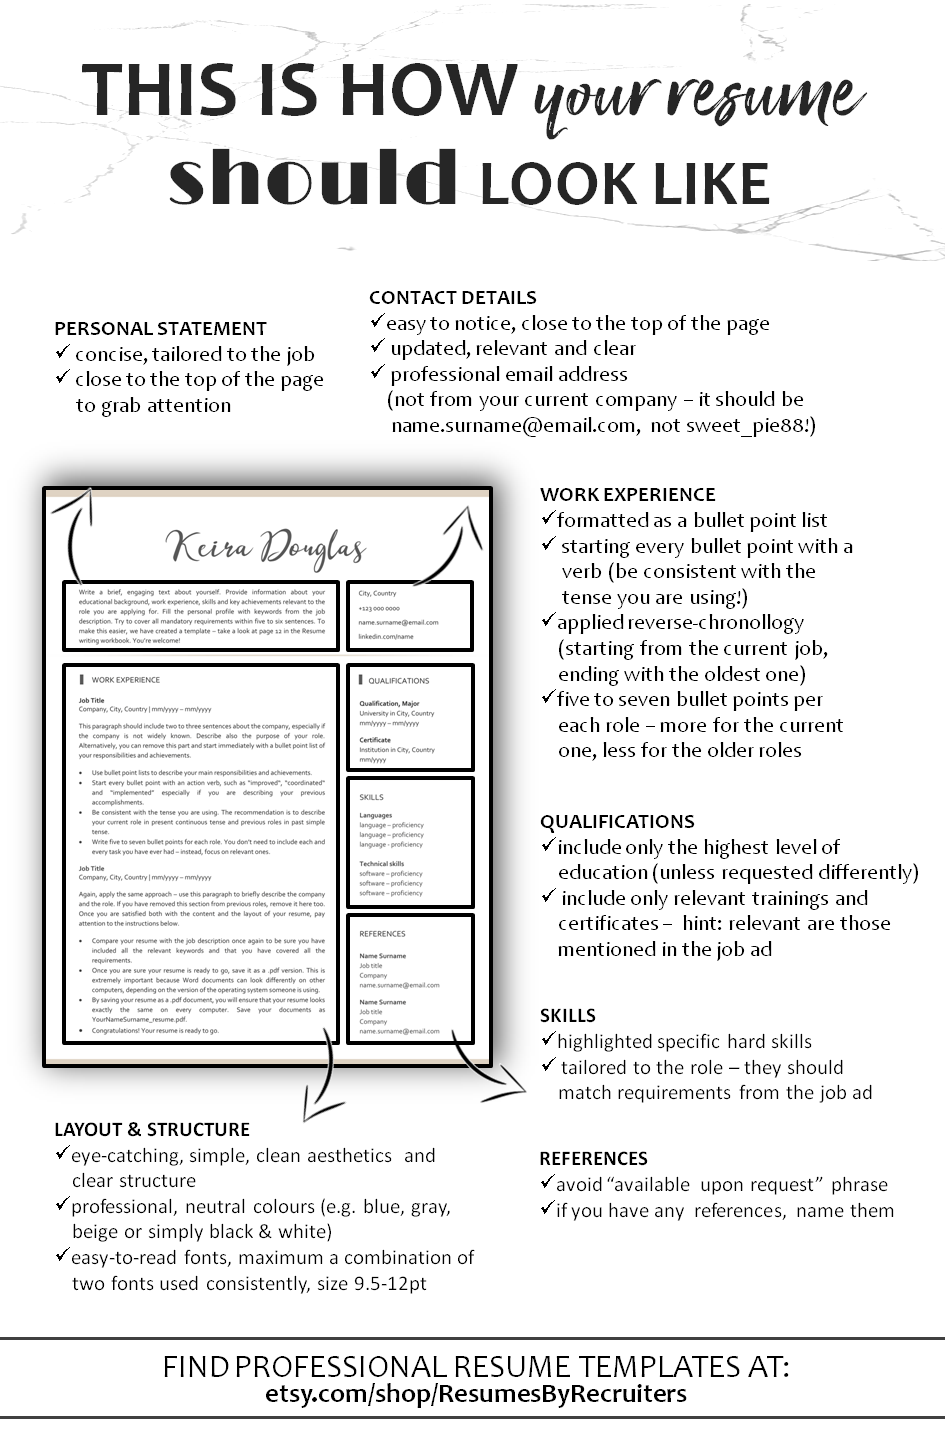 Learn How To Write A Perfect Resume In Less Than One Minute The Most Important CV Writing Tips Cvwritingtips Cv Resumetemplate Cvtemplate